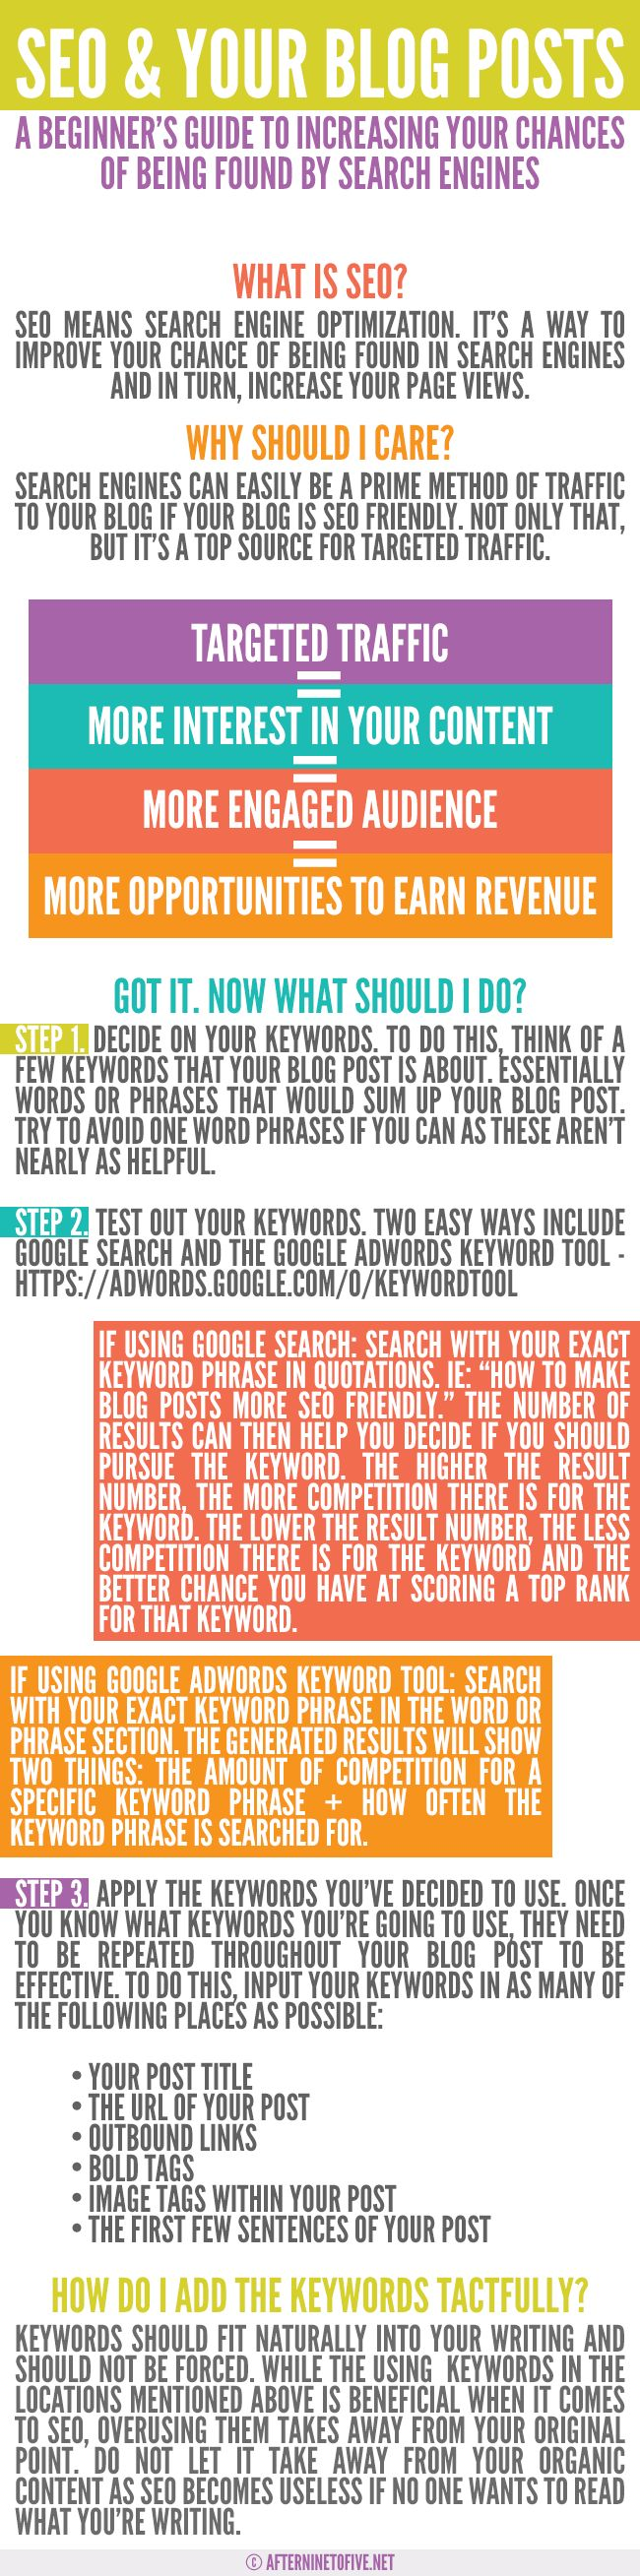 How To Make Your Blog Posts More SEO Friendly Infographic